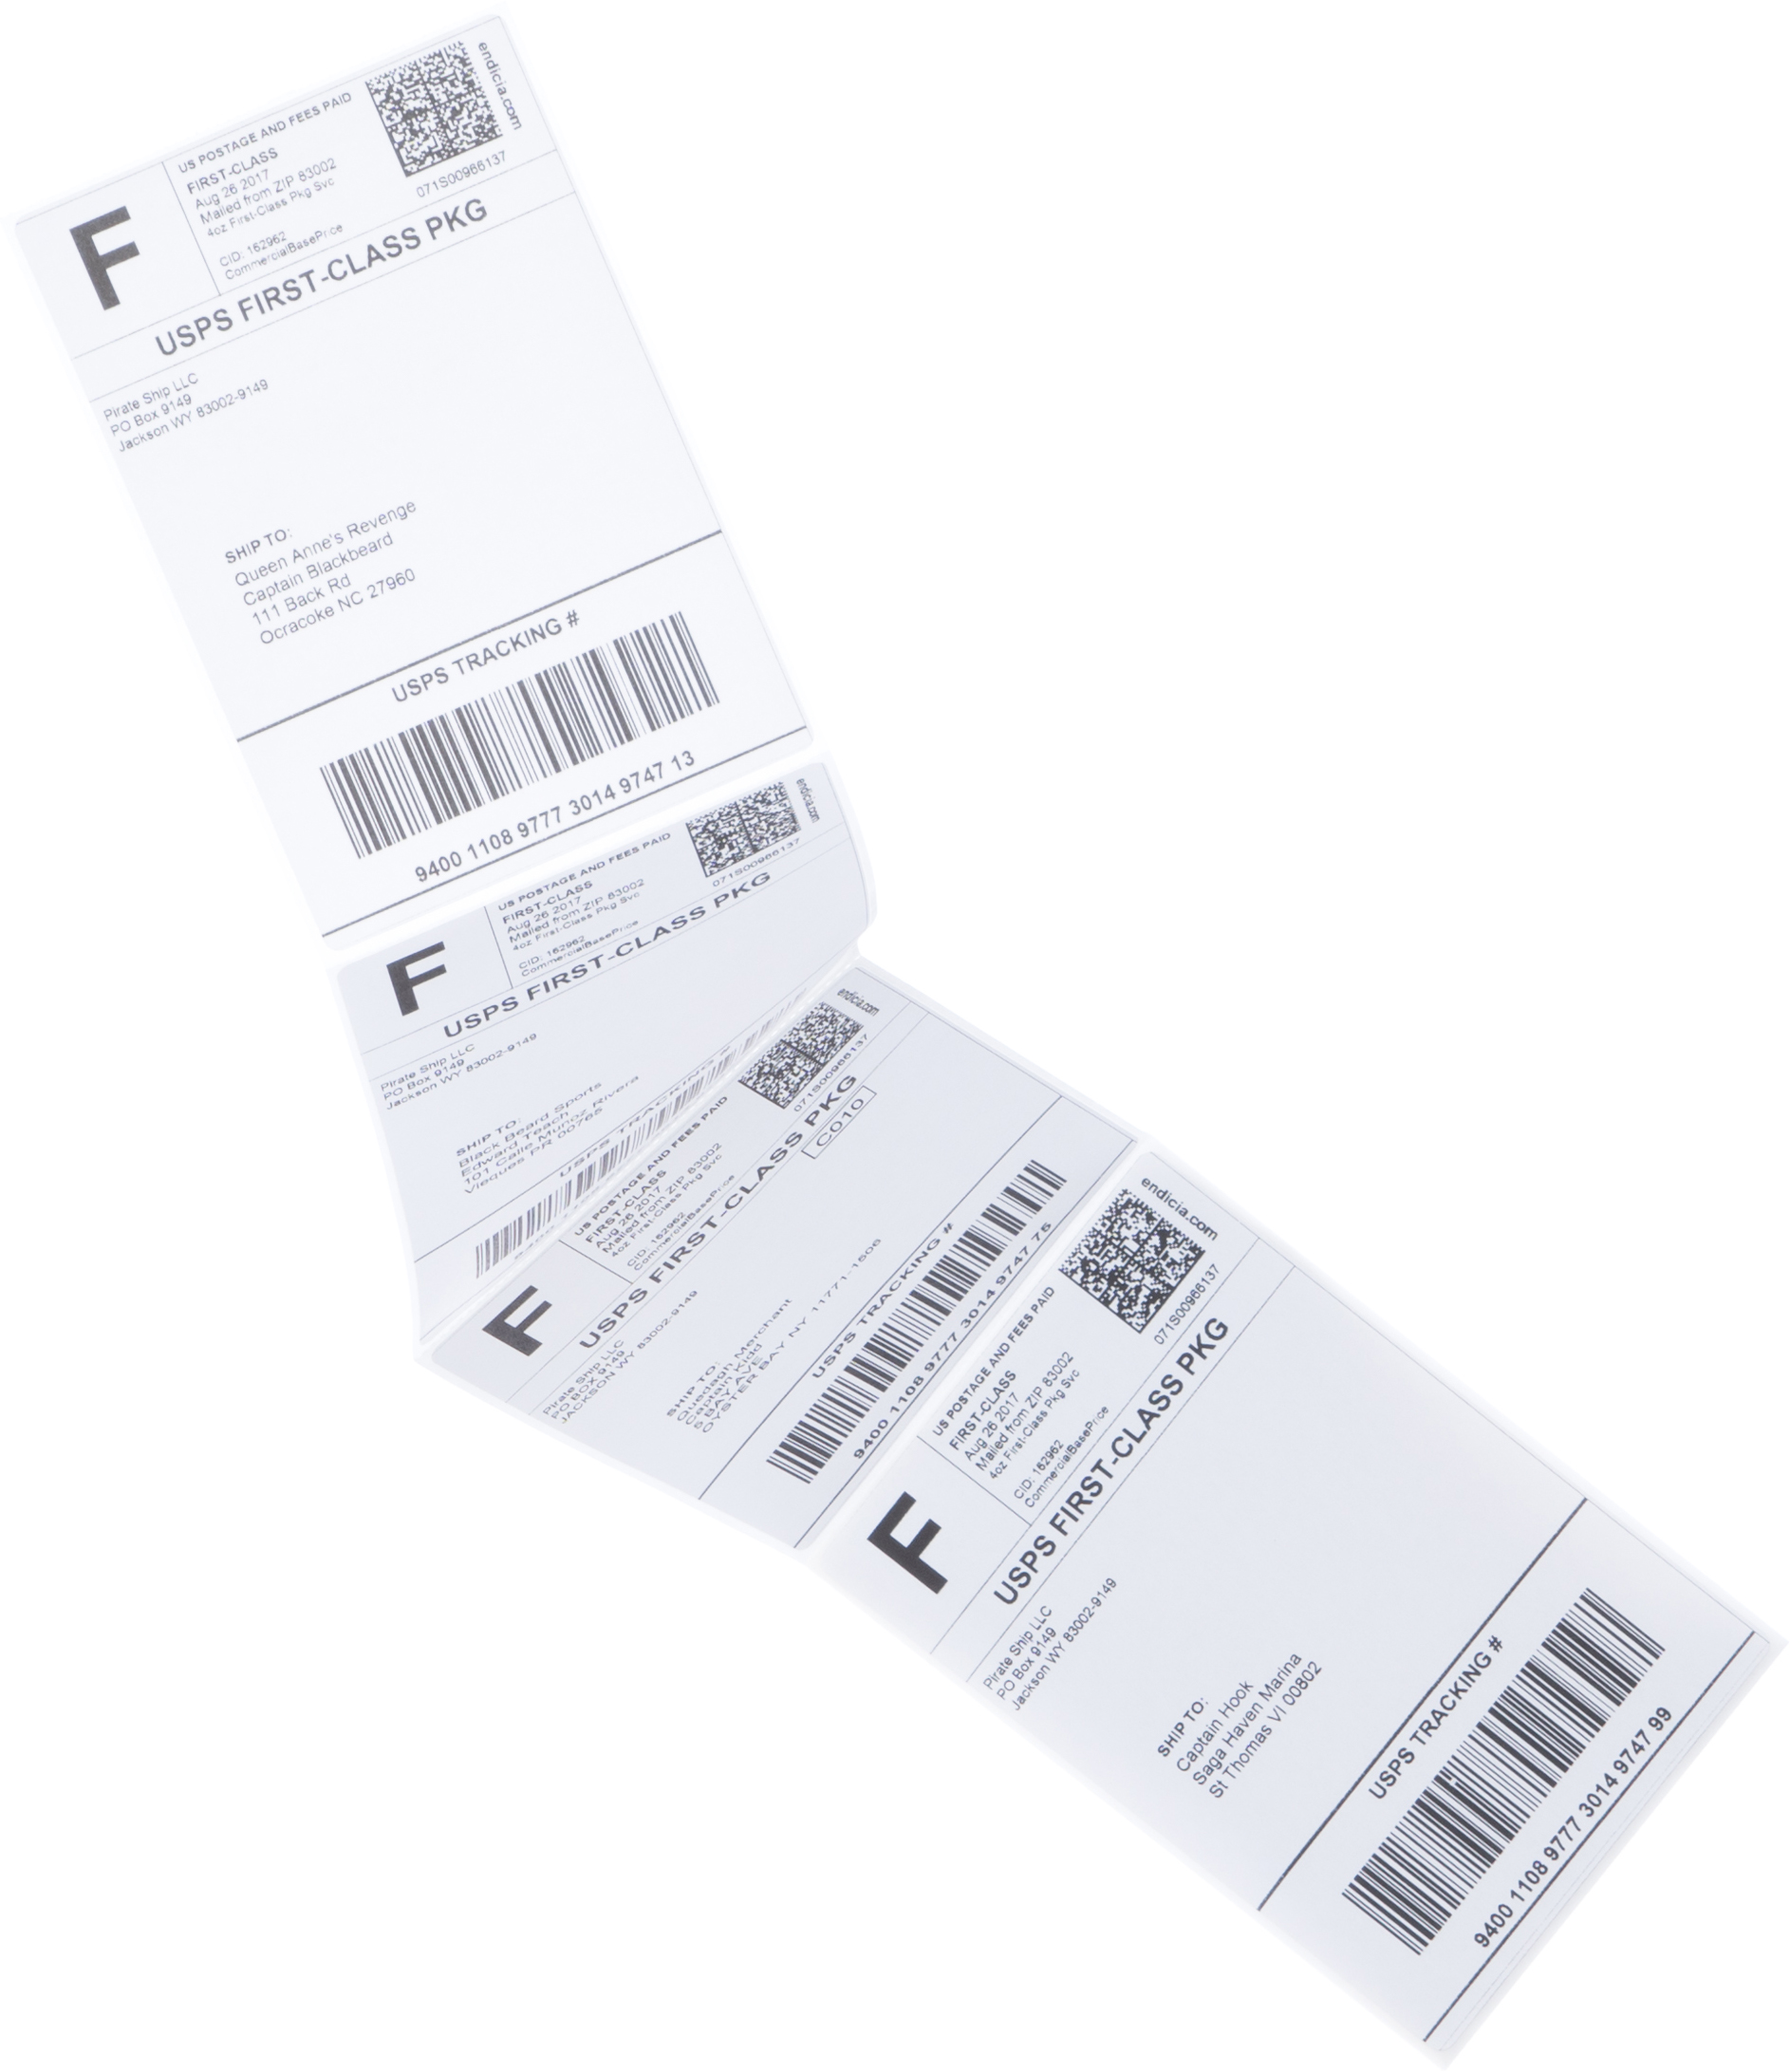 First Class Package shipping labels